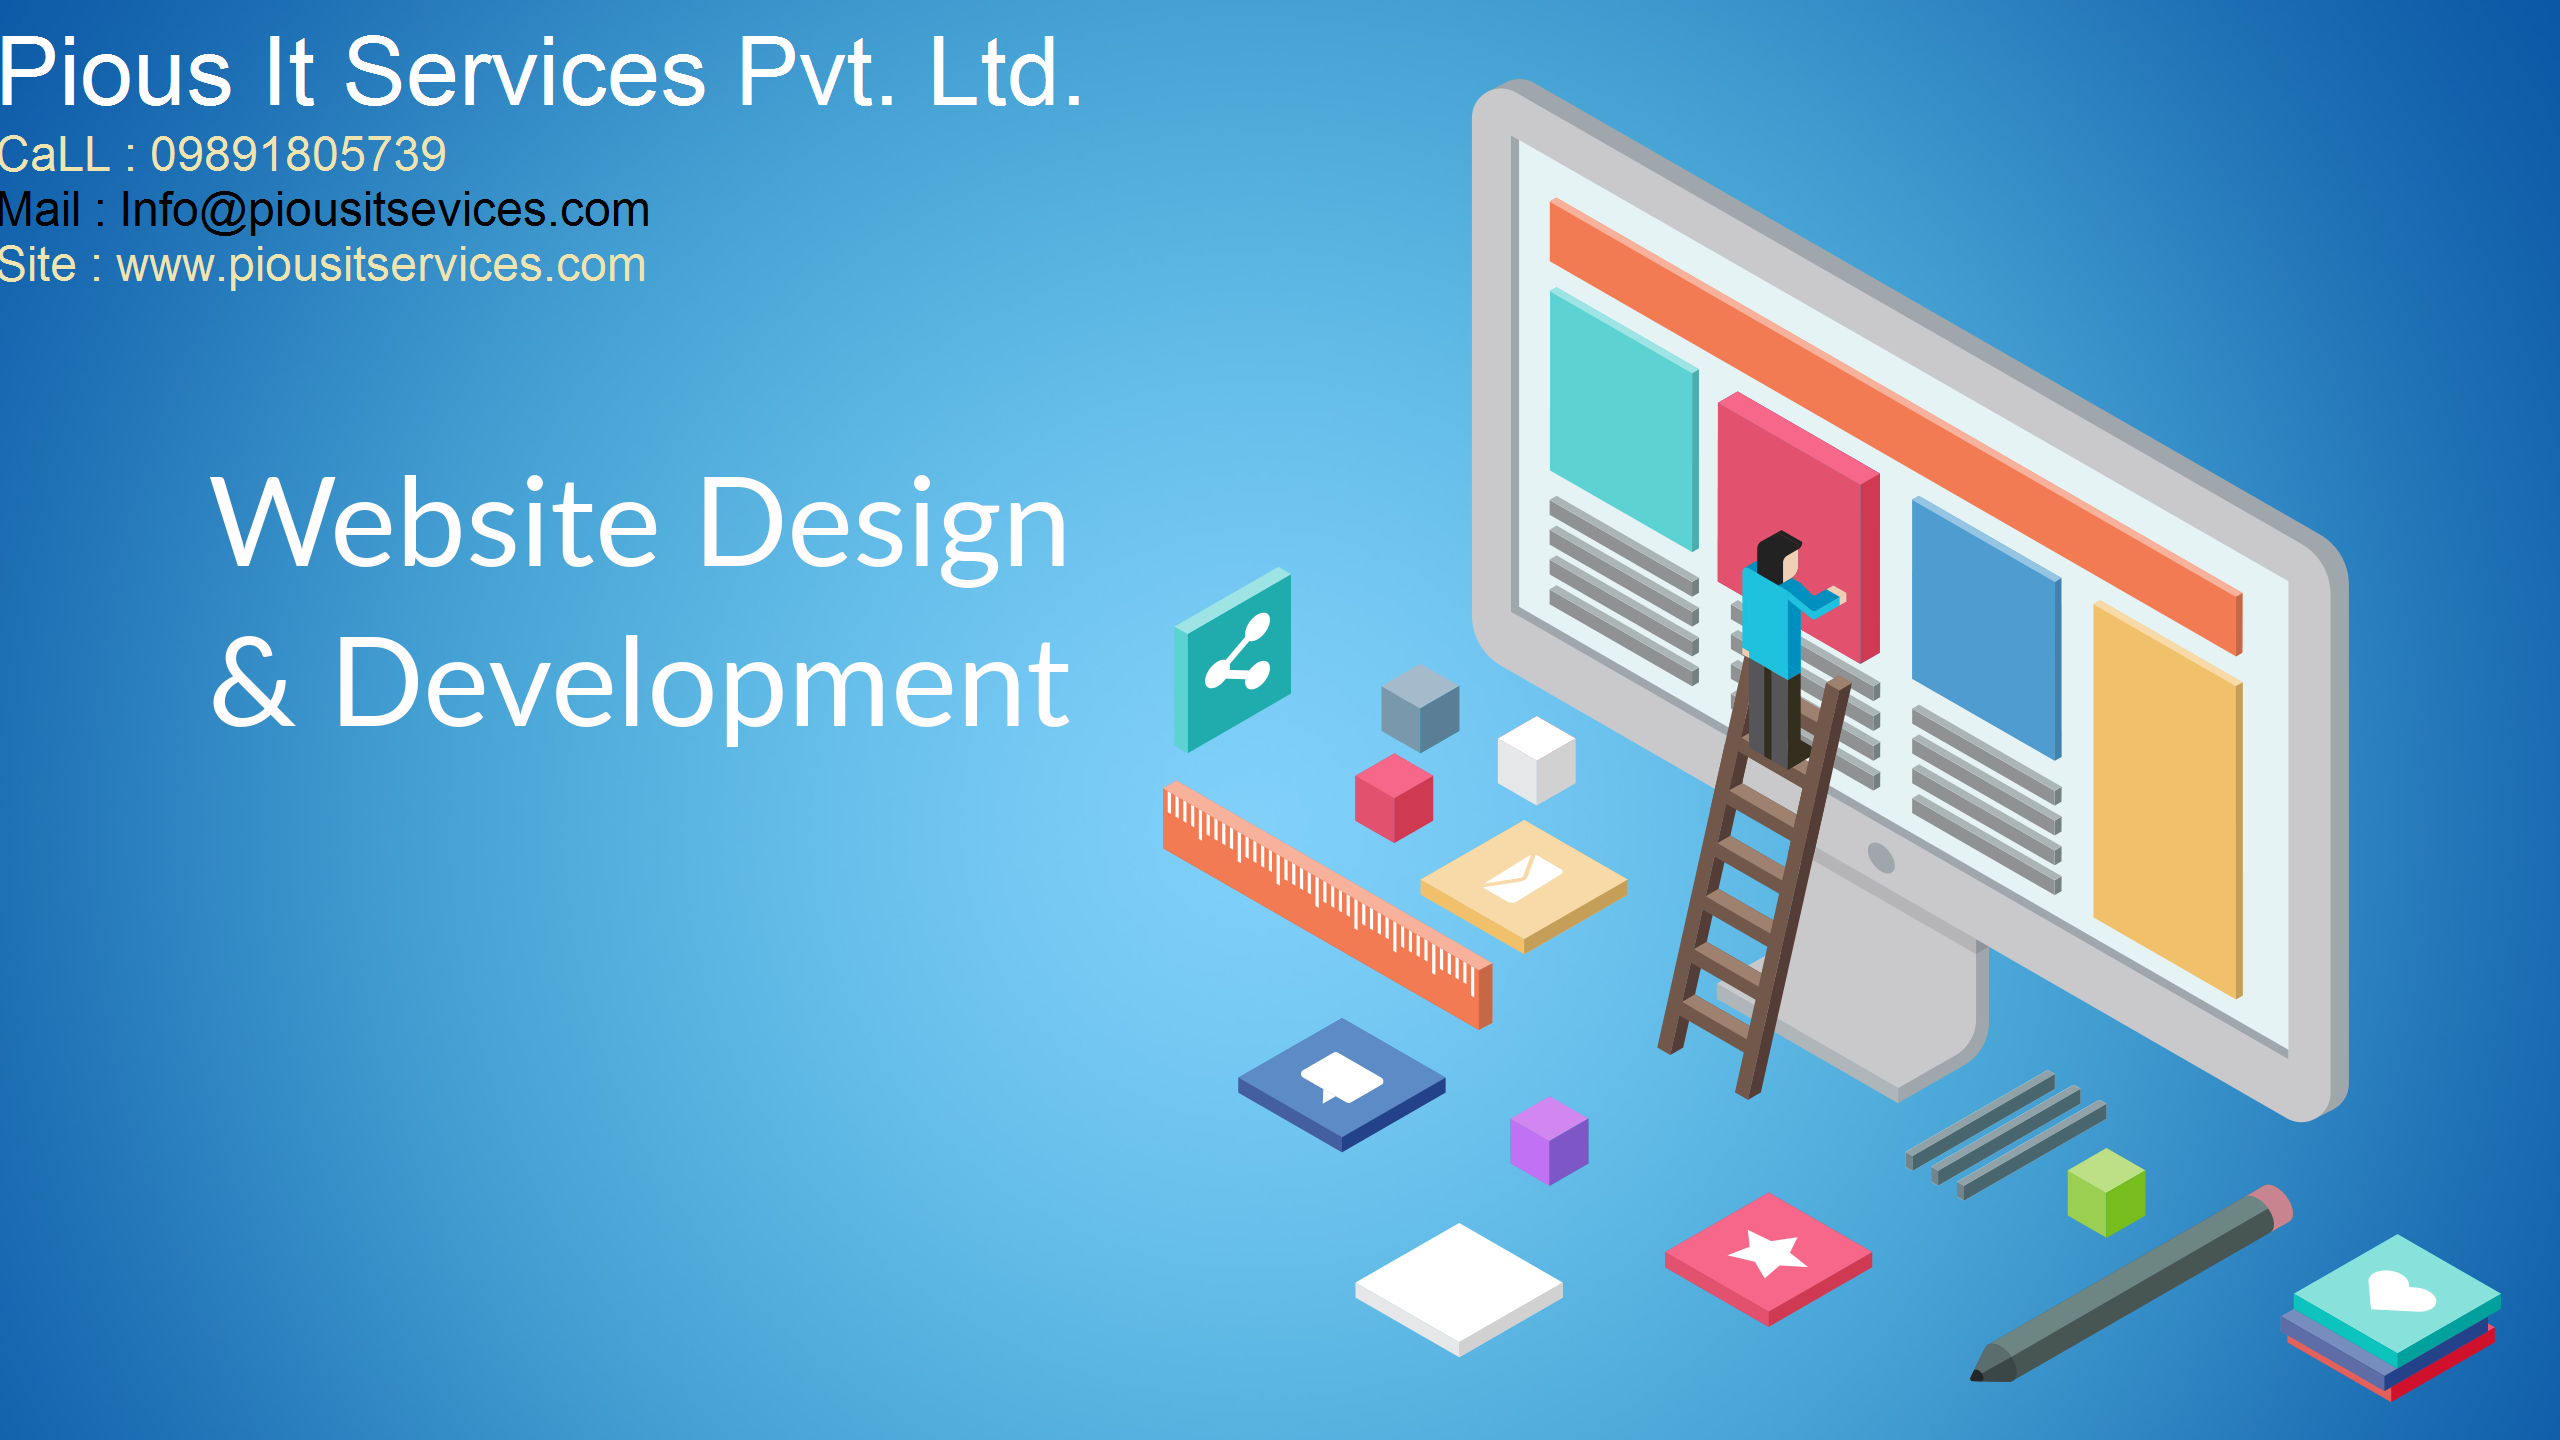 Website Design Company In Noida Sector 62 63 Pious It Services En 2020 The Globe